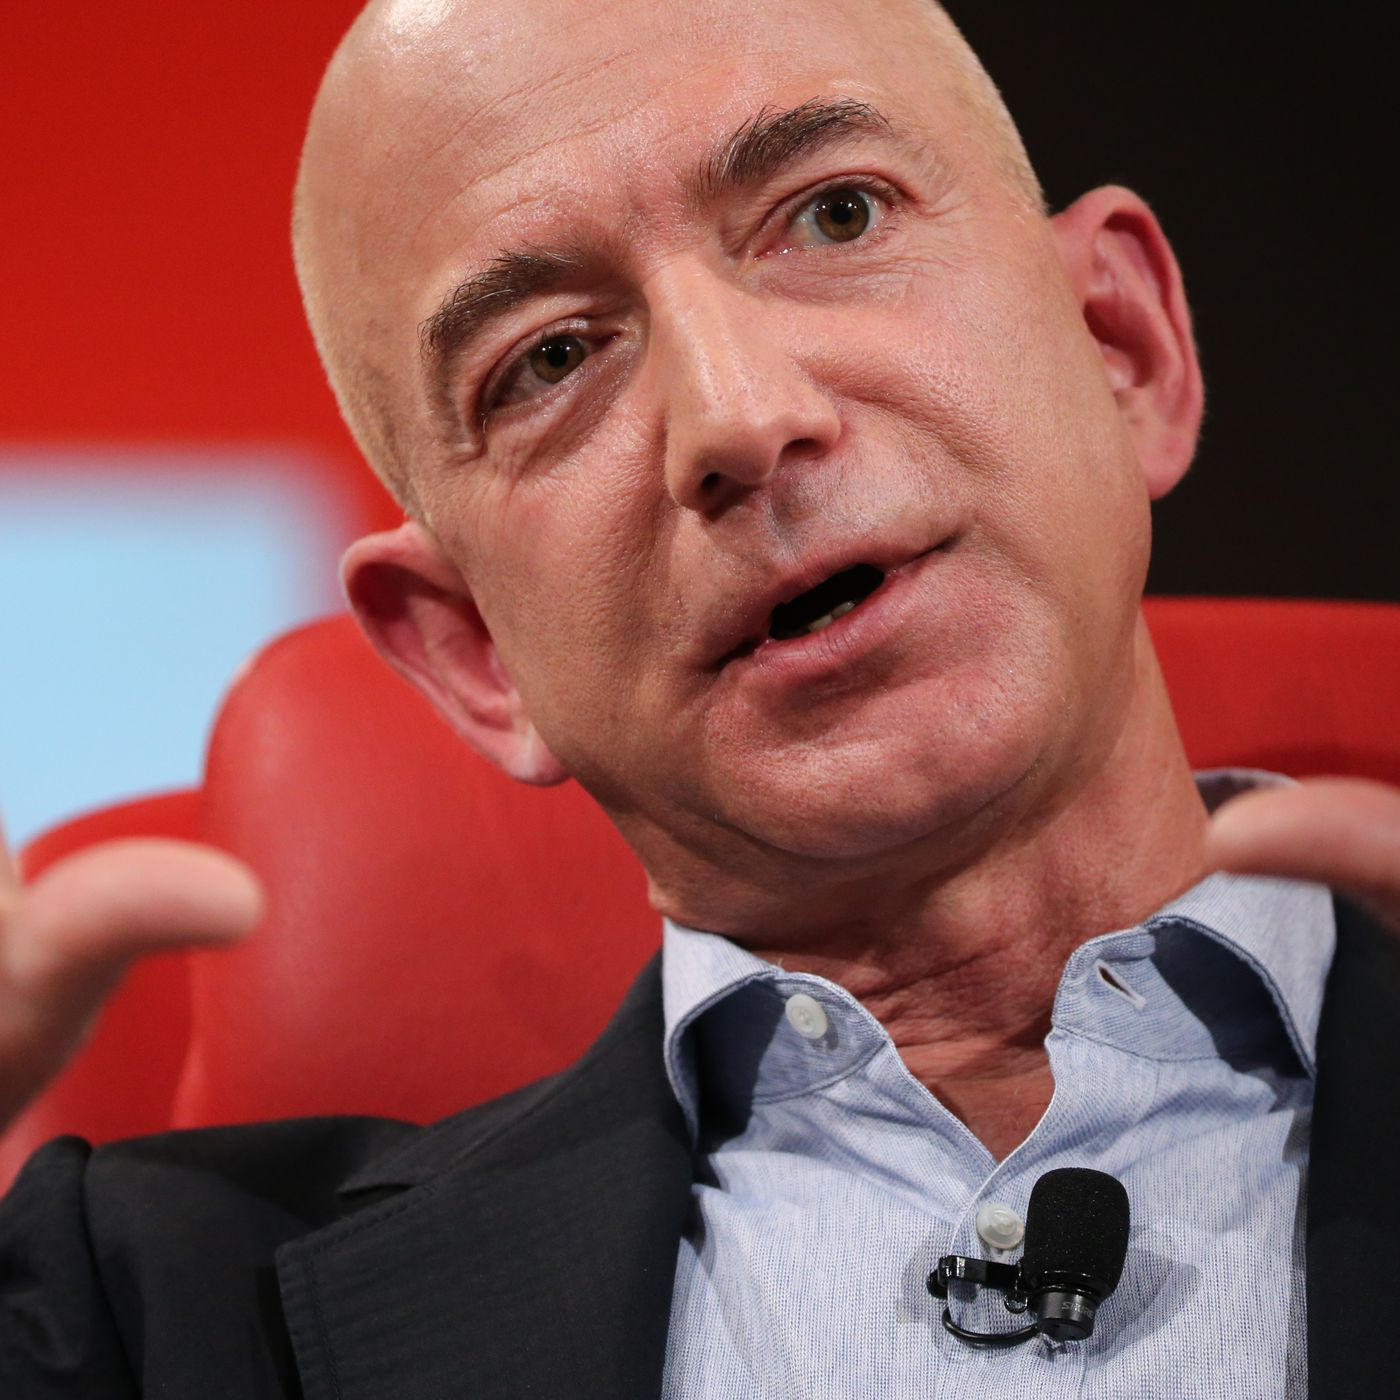 Jeff Bezos Thinks We Need To Build Industrial Zones In Space In